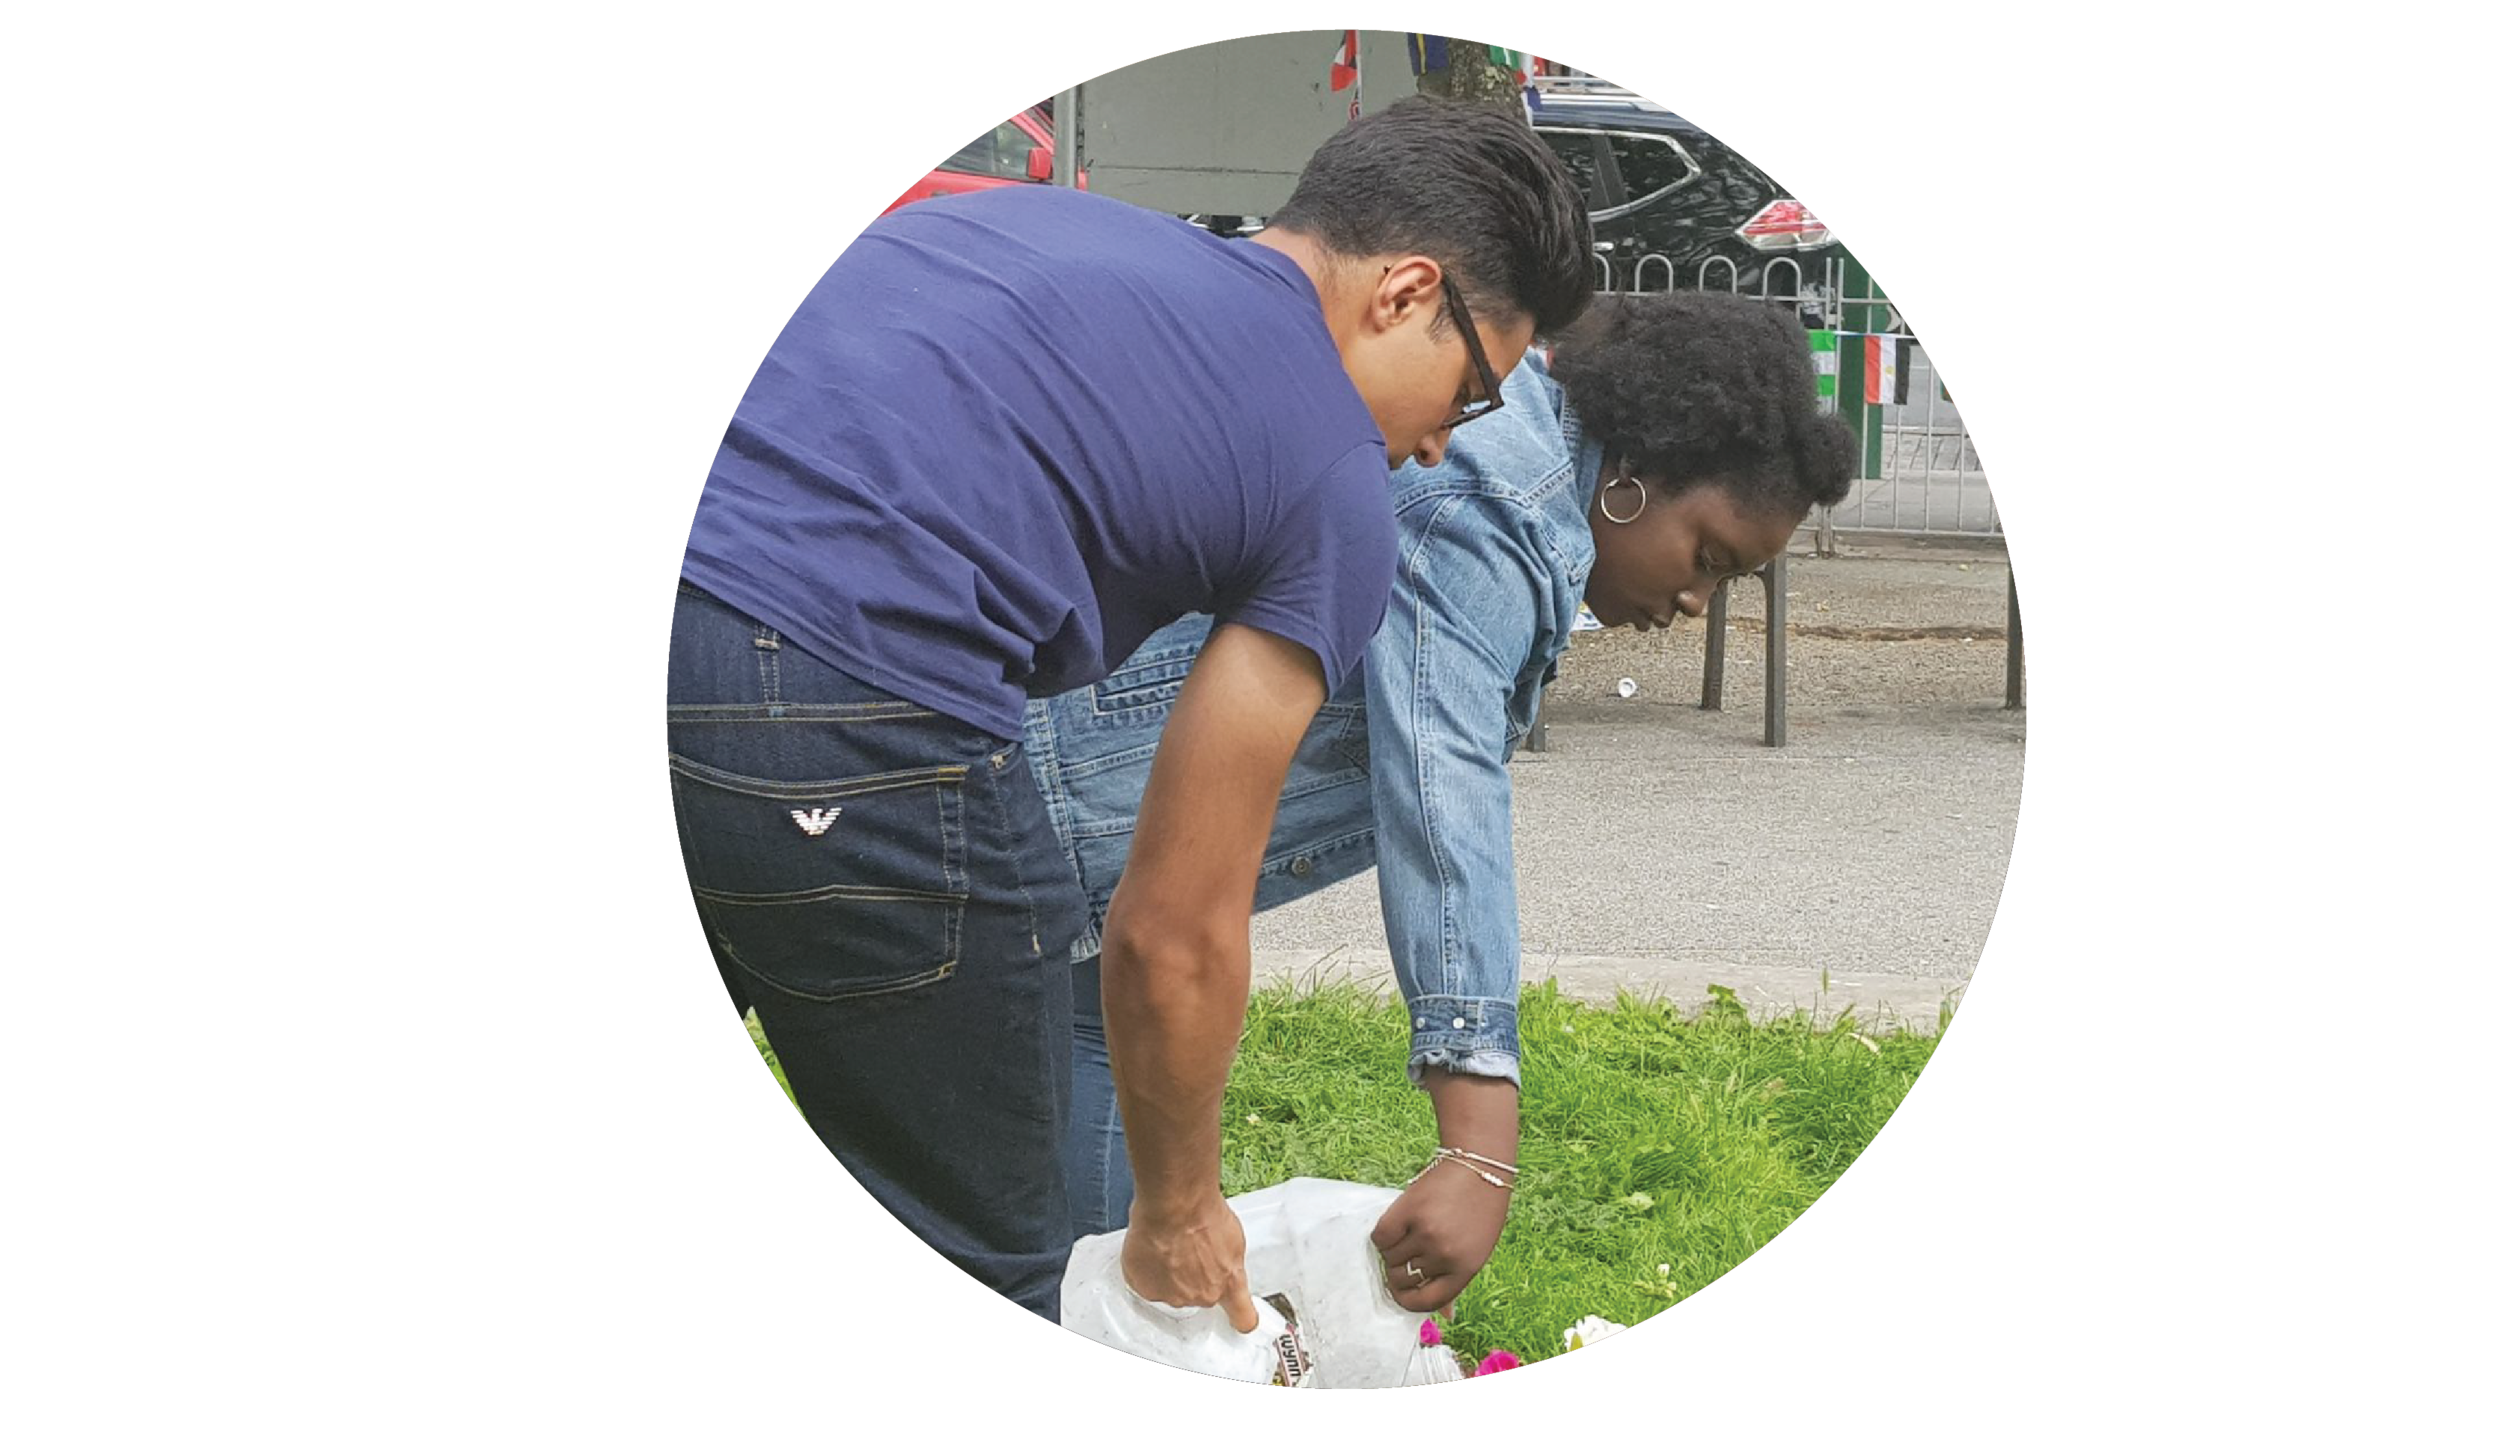 Contribute your valuable skills to help transform our community andmake it better place to live and work - Do you want to volunteer with us? Fill in the form below.